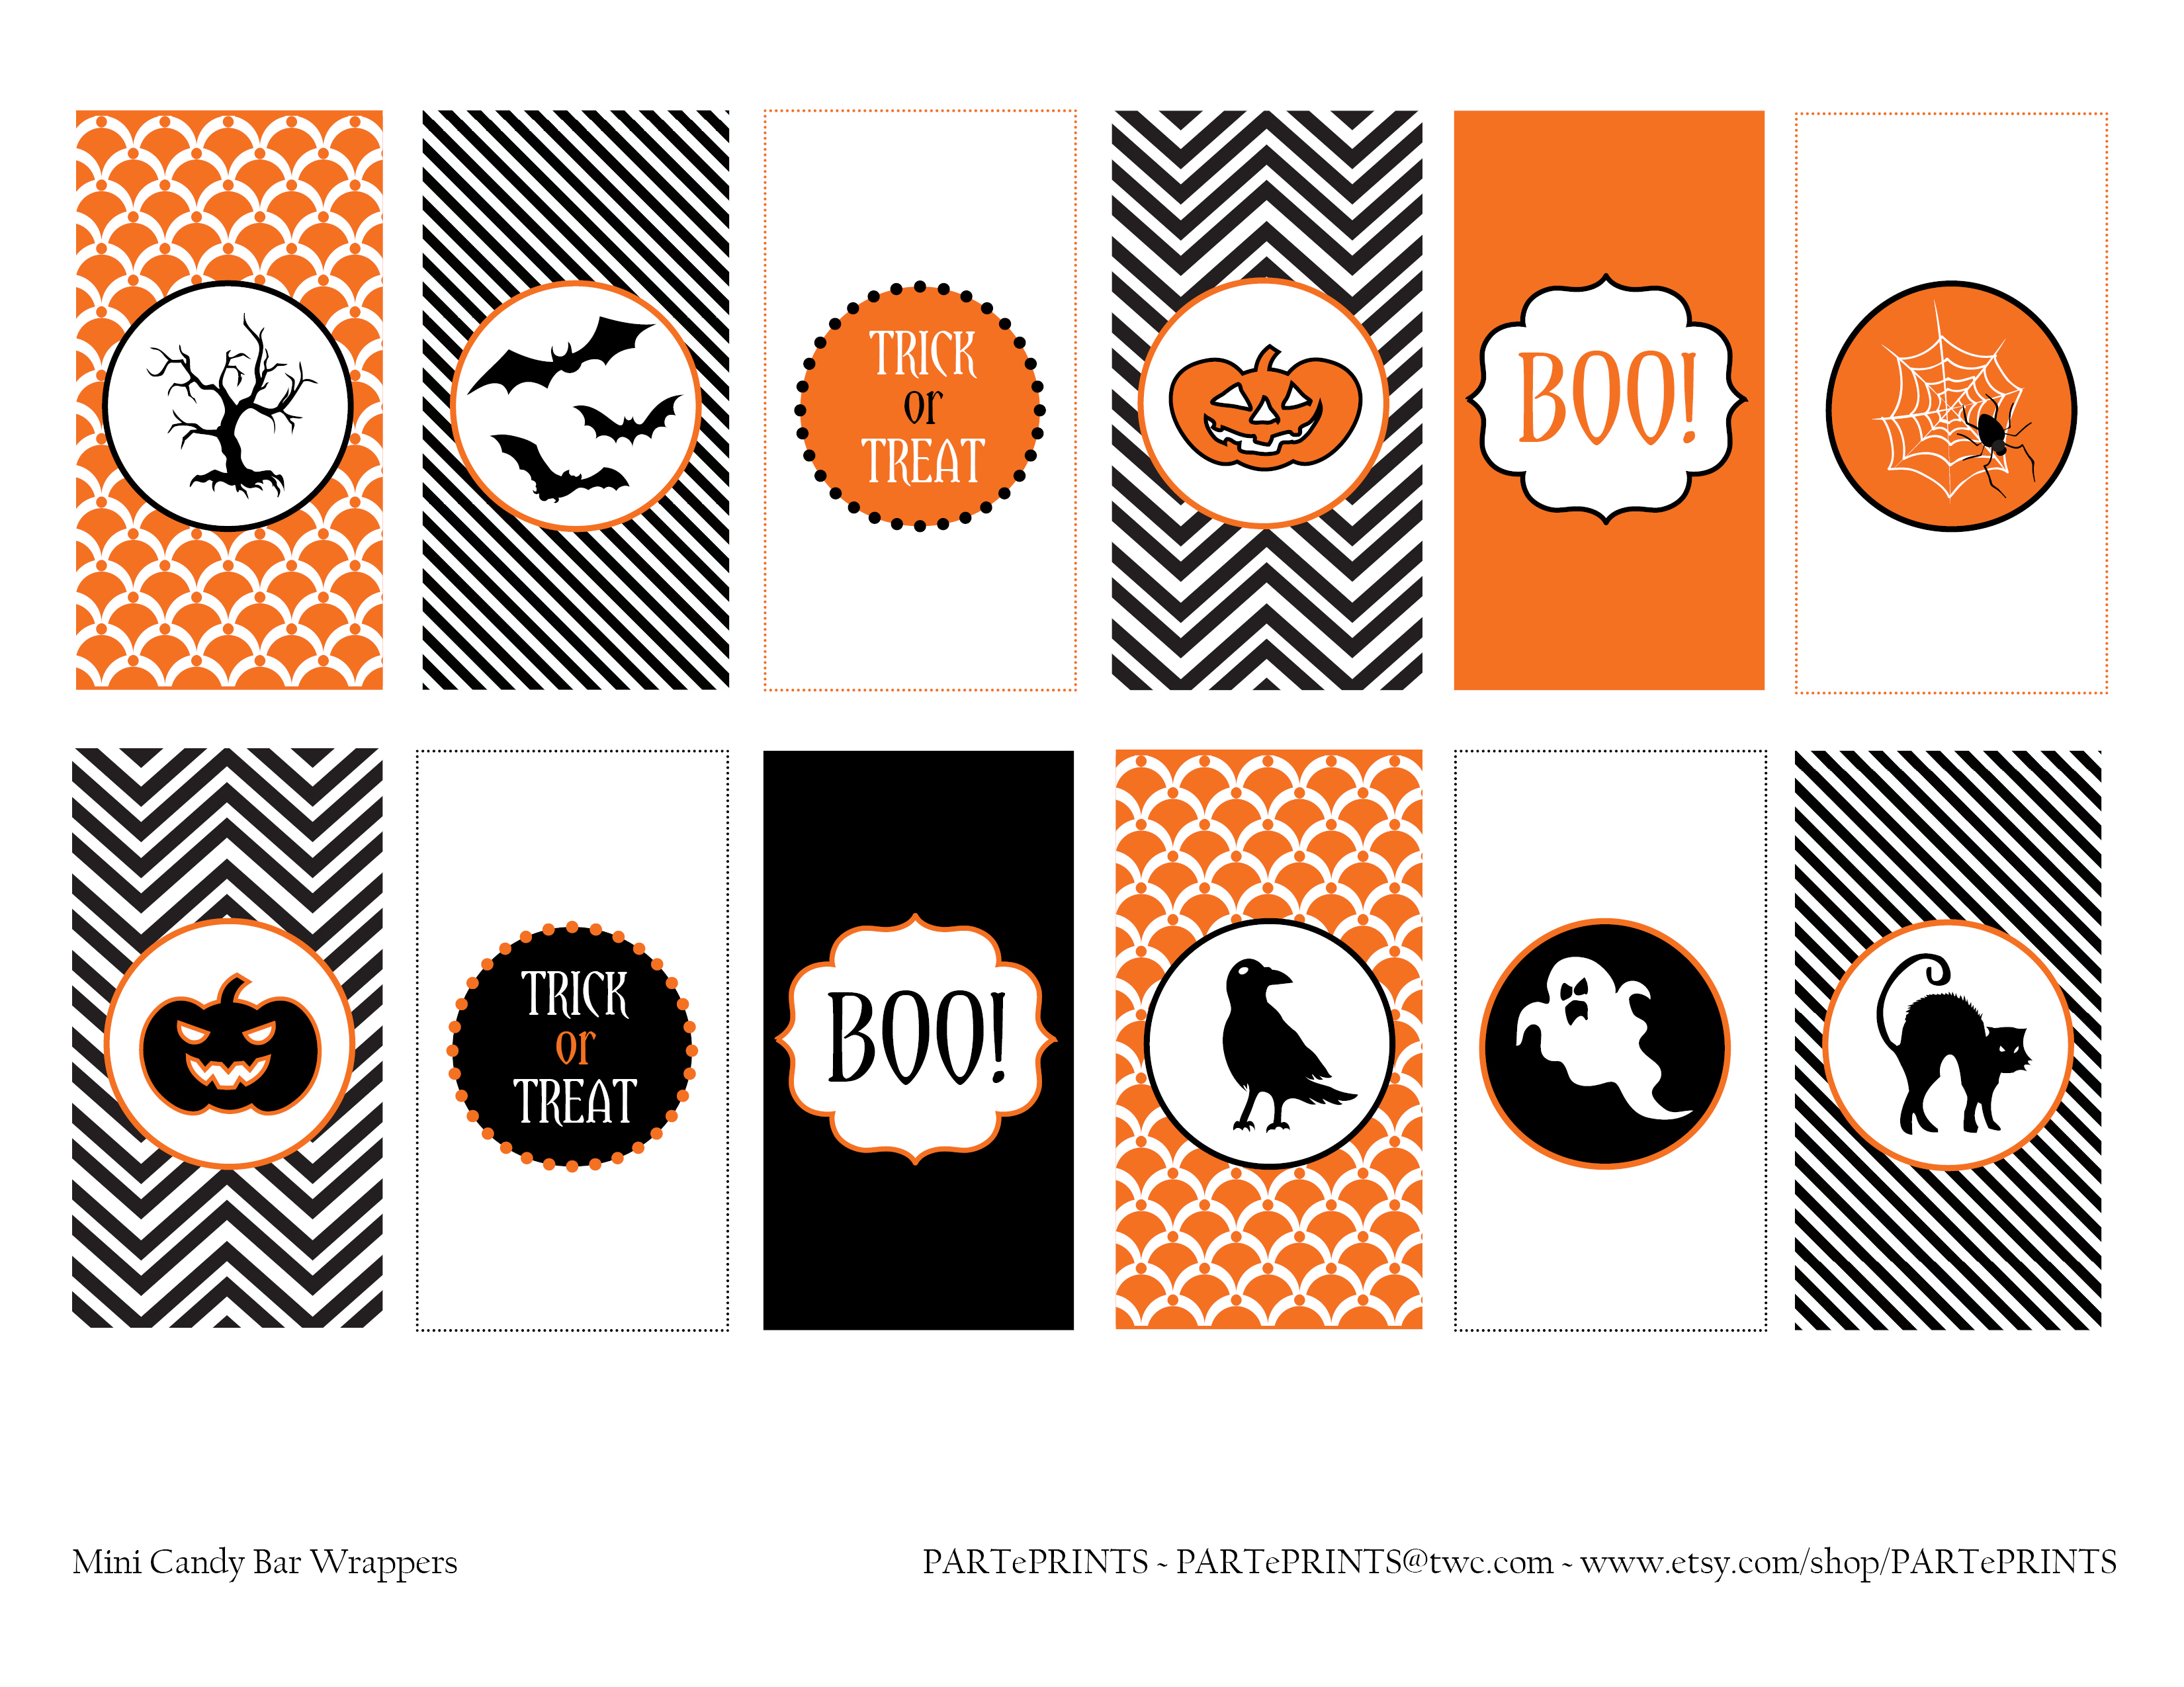 Free Halloween Printables From Parteprints | Catch My Party - Free Printable Halloween Party Decorations